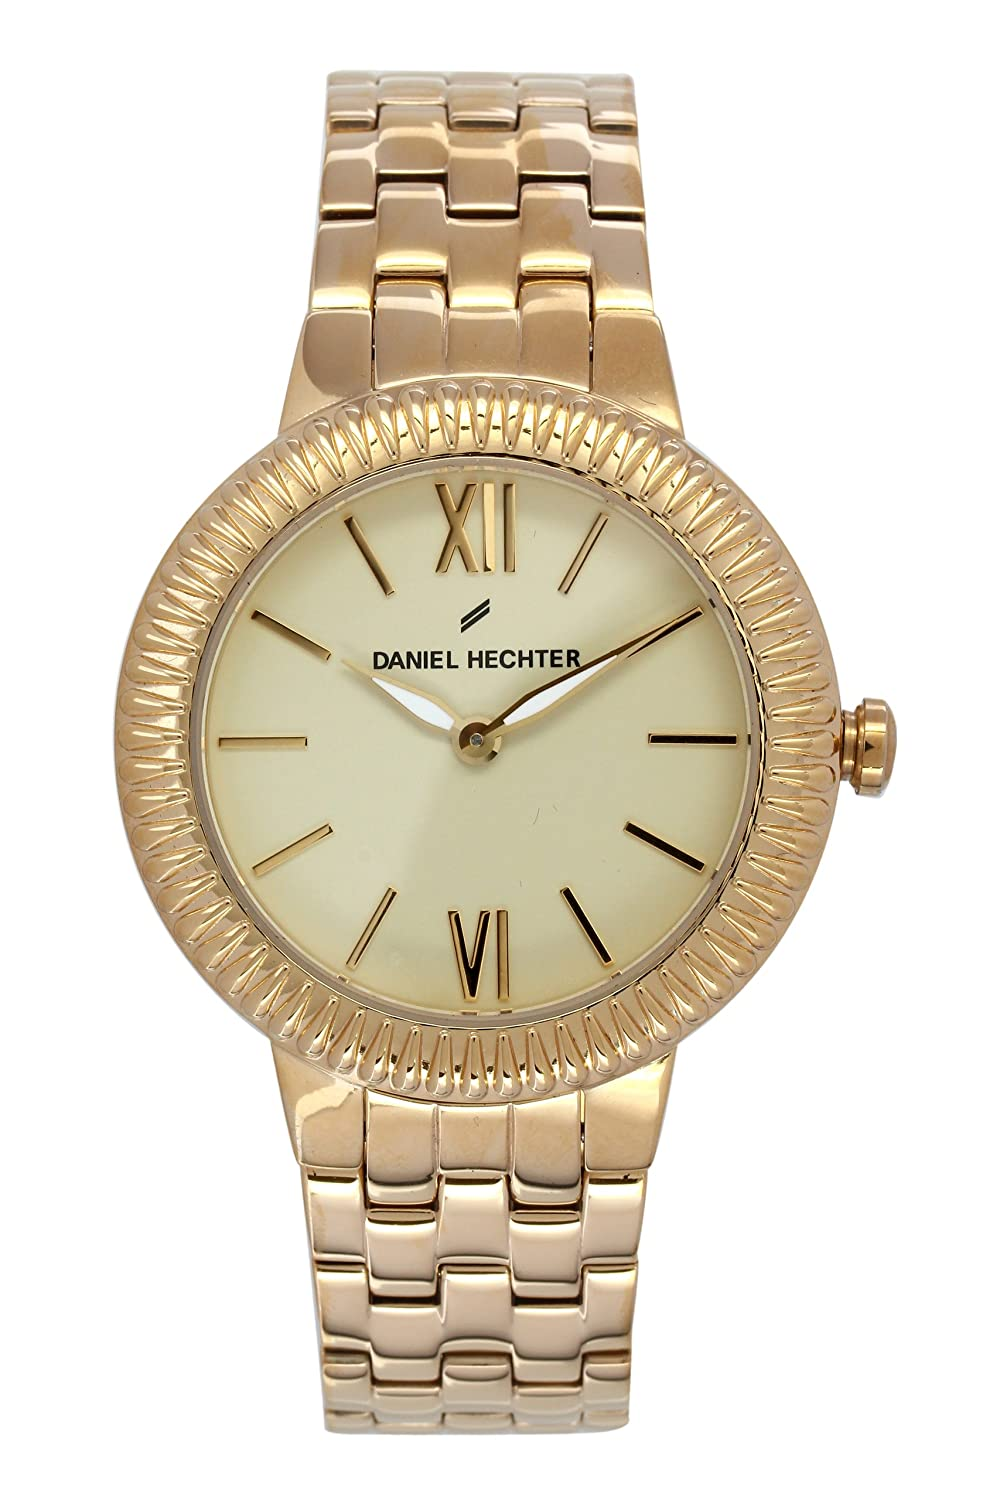 Amazon.com: Daniel Hechter reloj para mujer: Watches